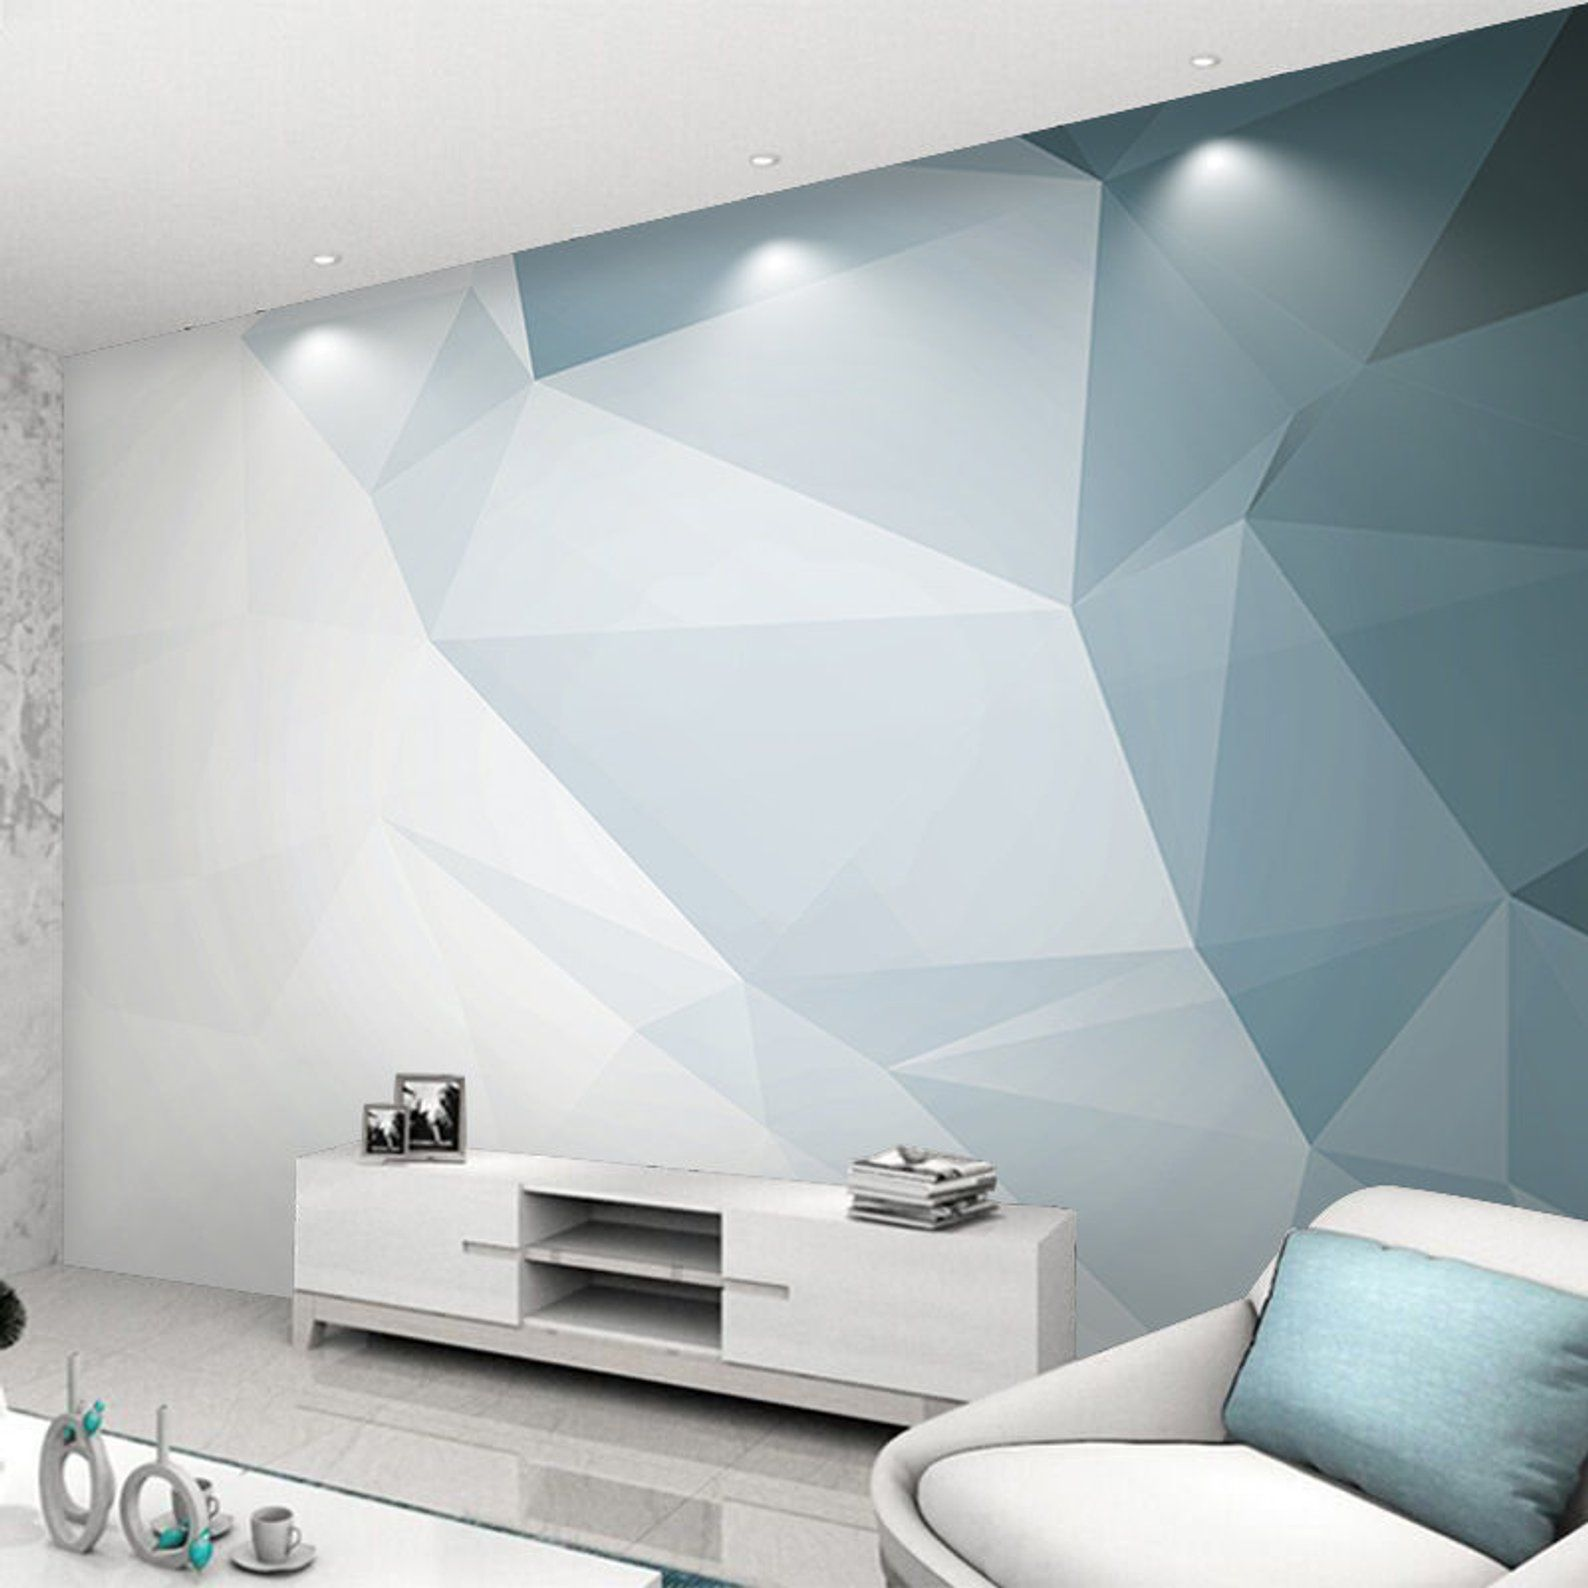 Modern Geometric Stereoscopic Wallpaper Wall Mural Imaginary Etsy Bedroom Wall Paint Geometric Wall Paint Bedroom Wall